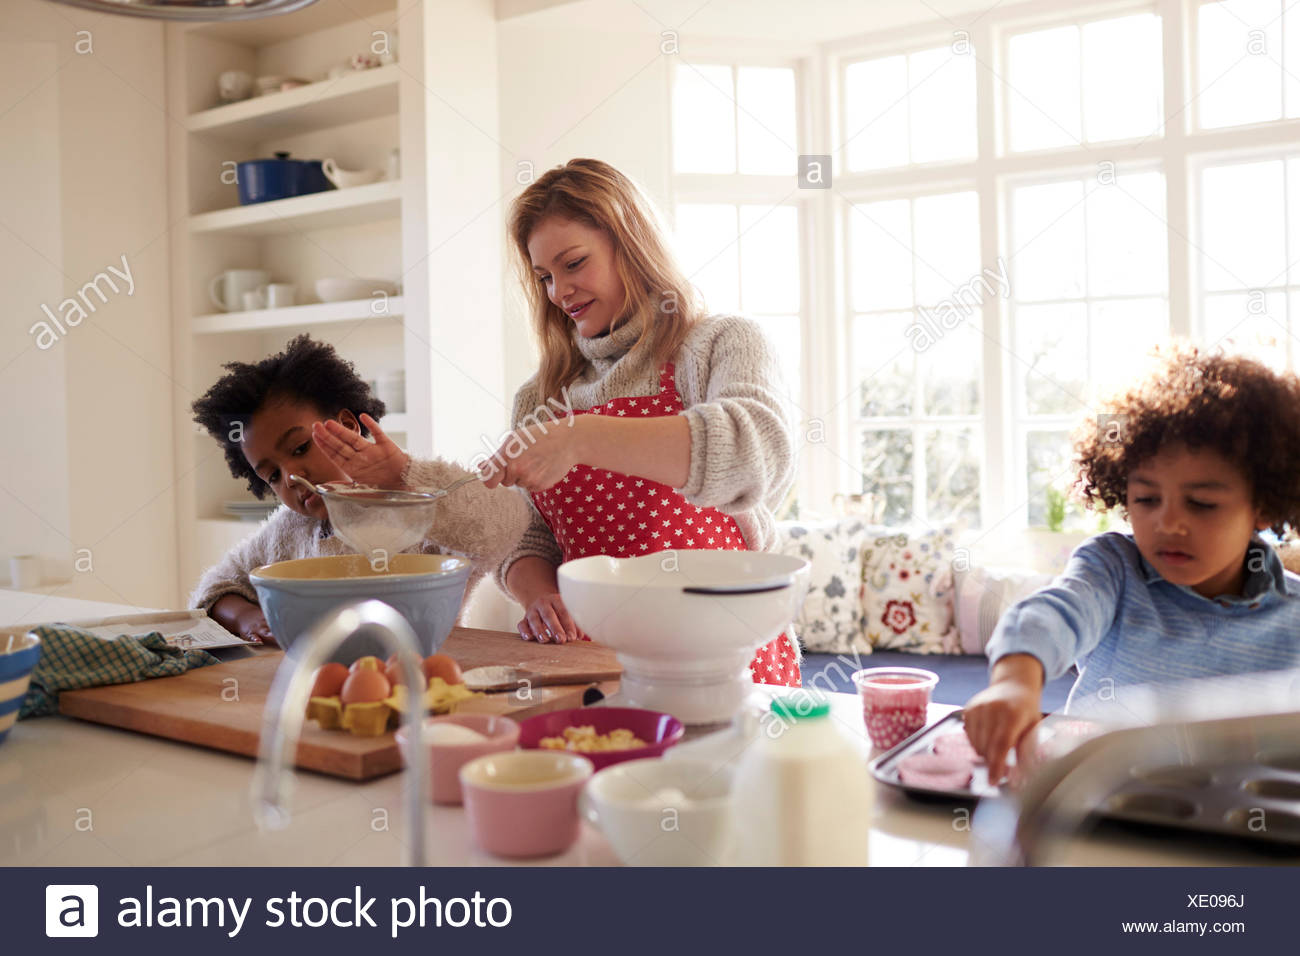 Mother Baking Cake With Children In Kitchen At Home Stock Photo